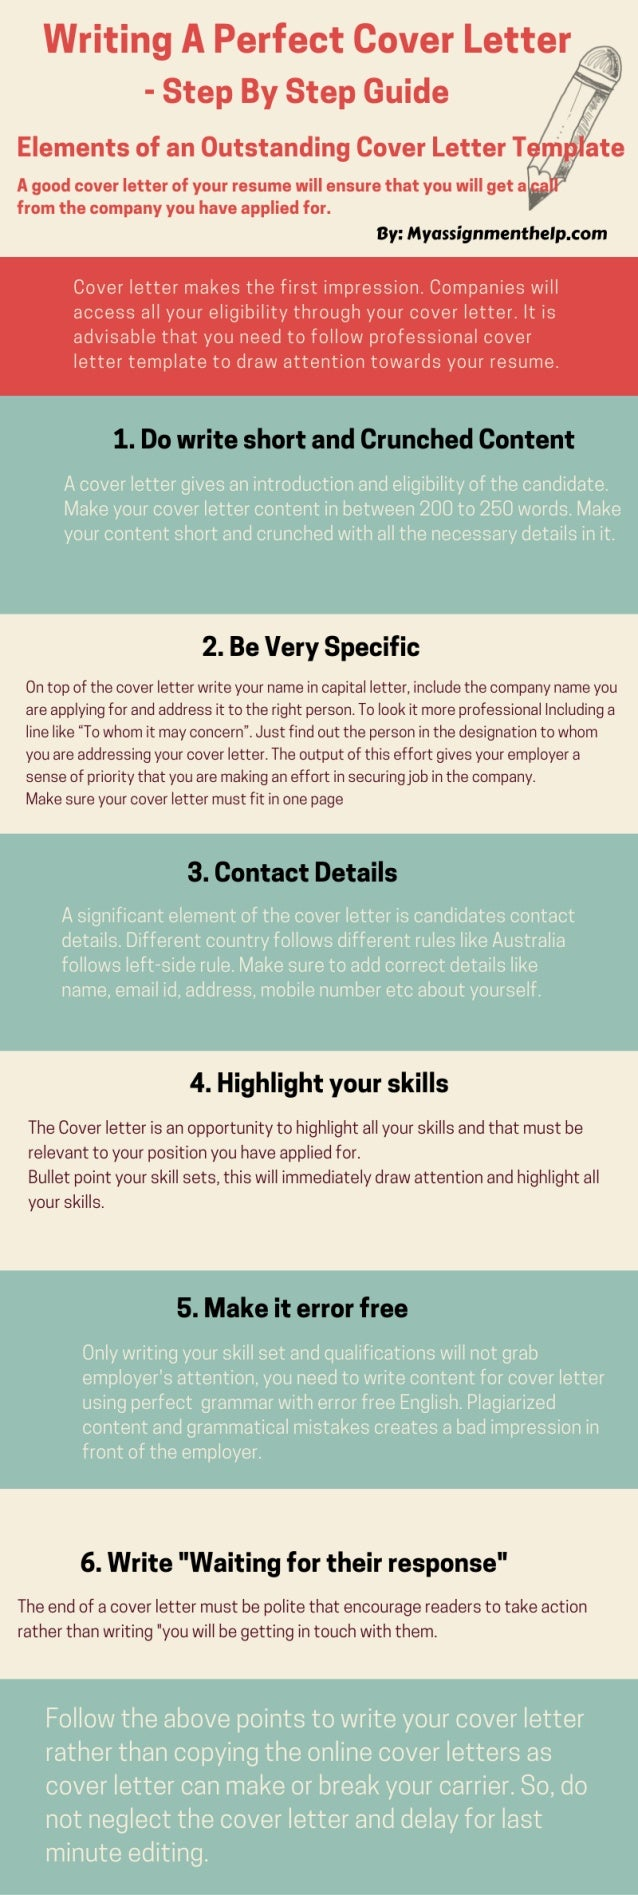 Writing A Perfect Cover Letter - Step By Step Guide